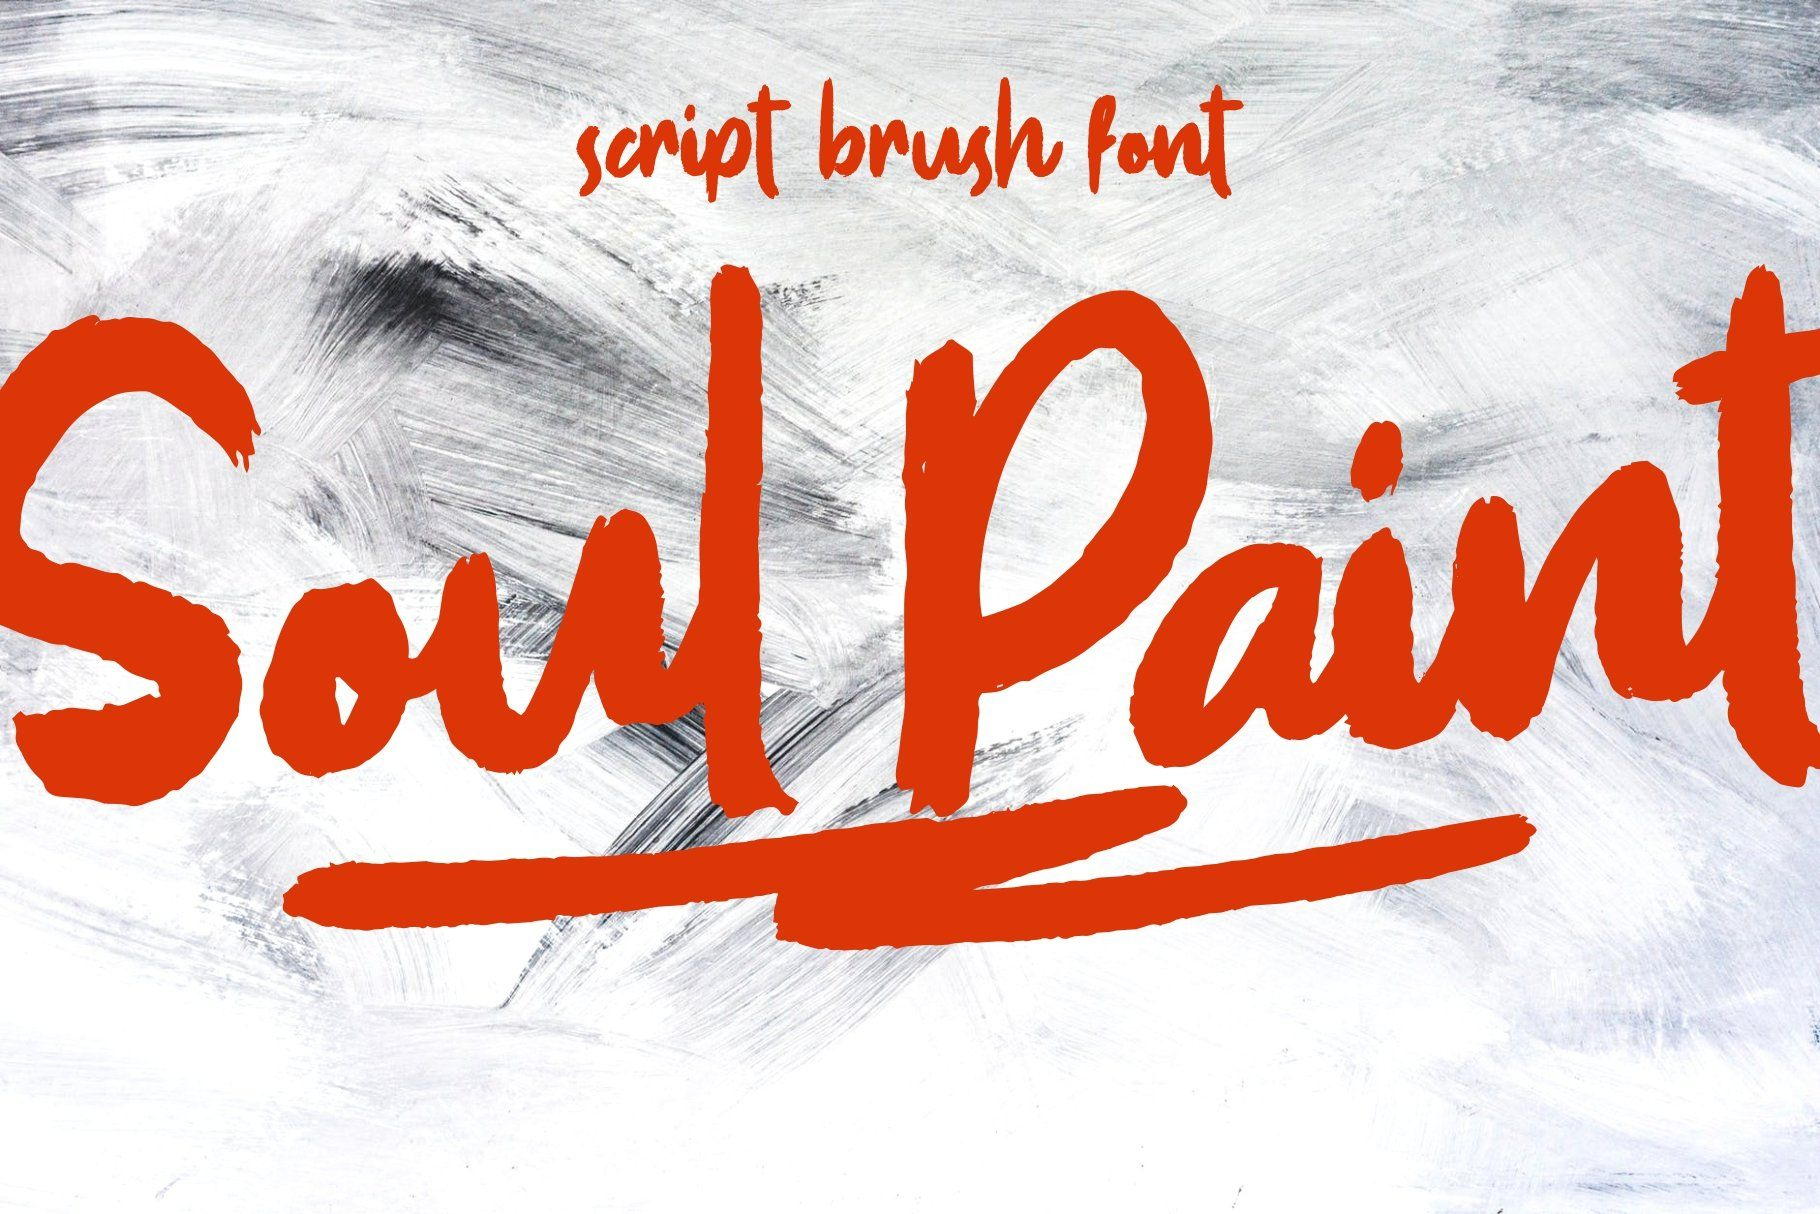 **Introducing SOUL PAINT semi script brush font with dry